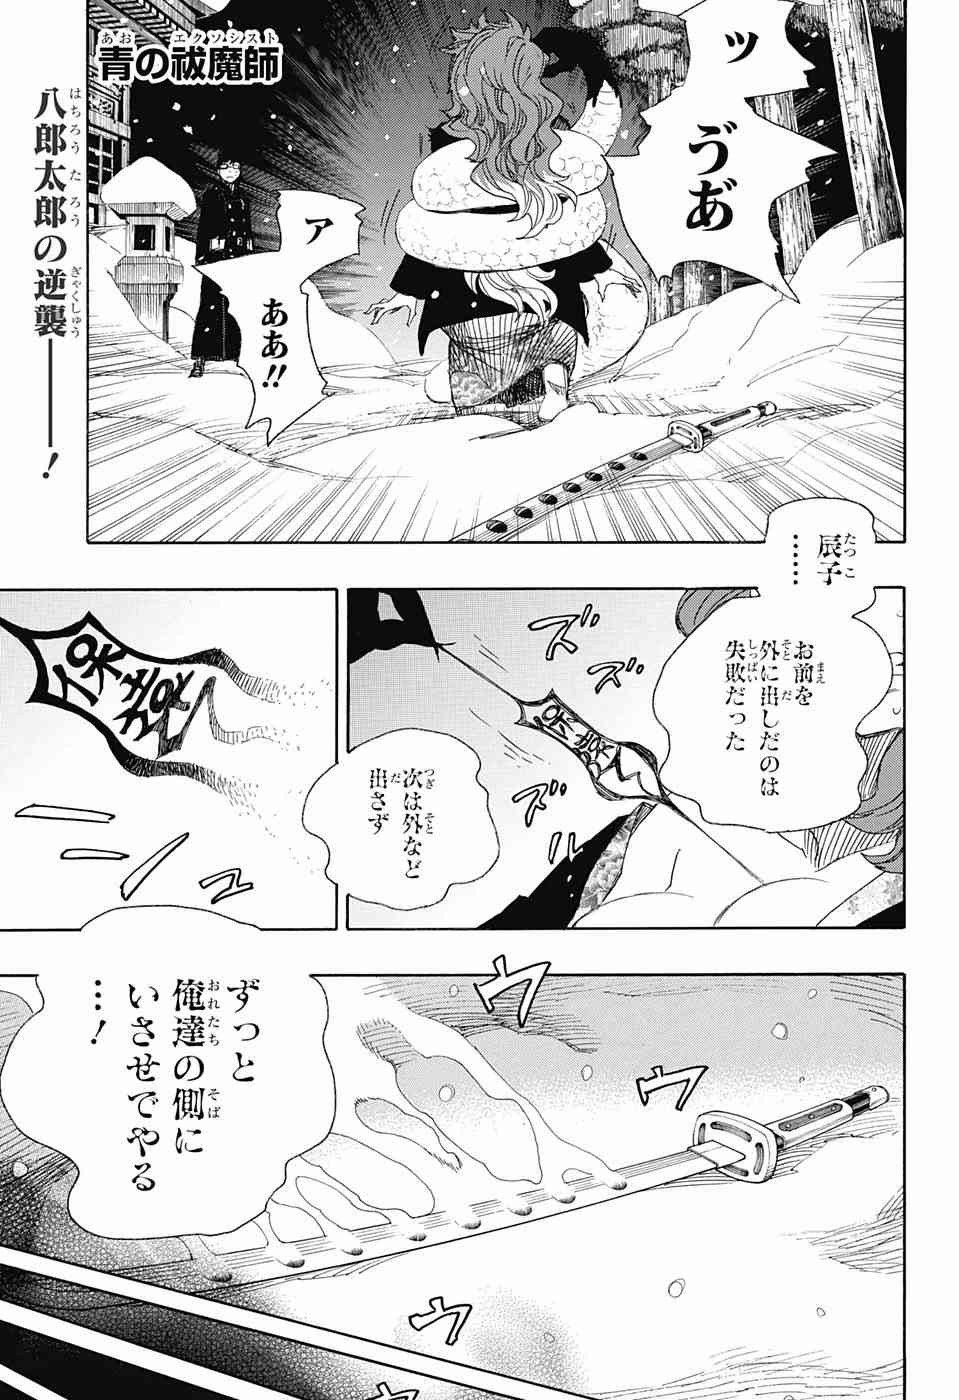 Ao no Exorcist - Chapter 78 - Page 1